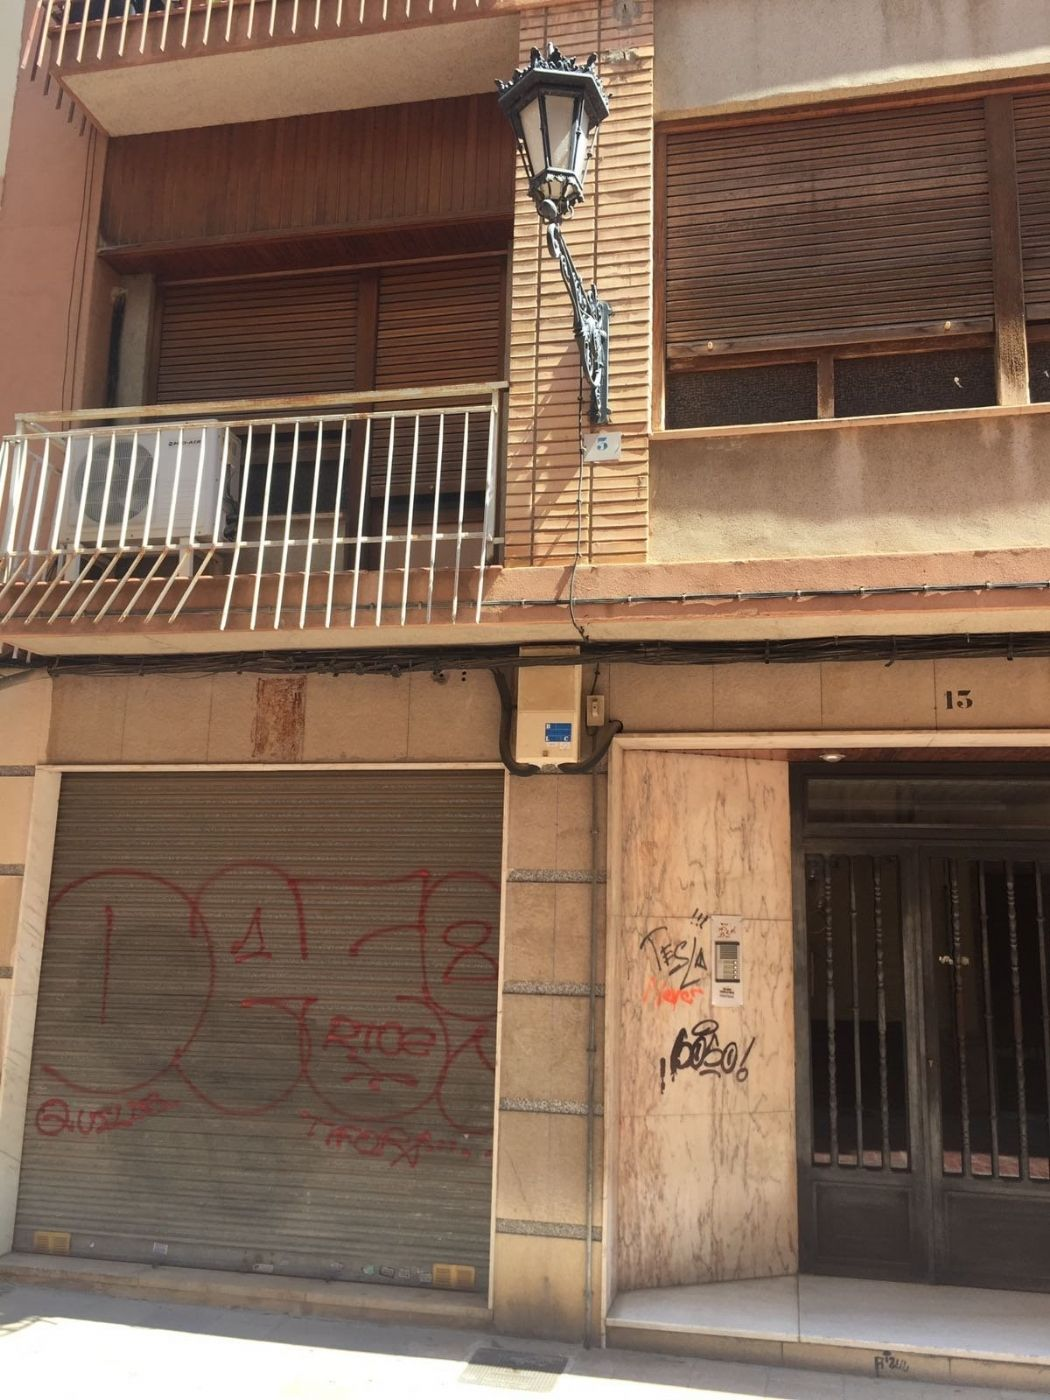 Bar en Calle antonio maura, 13. Se vende local comercial - no es un traspaso